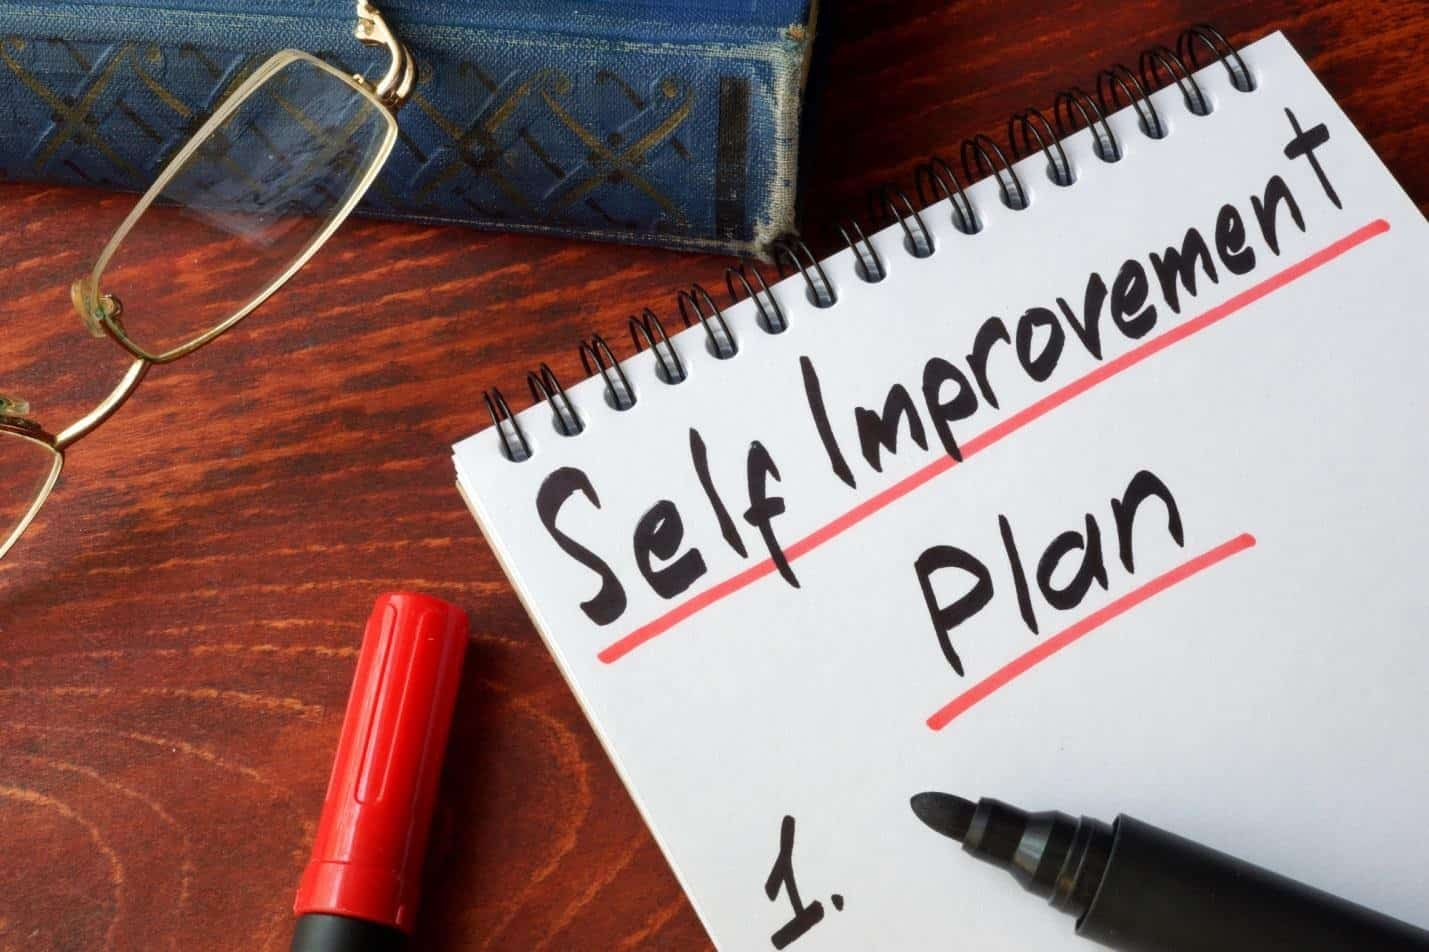 Improve Yourself as a Person